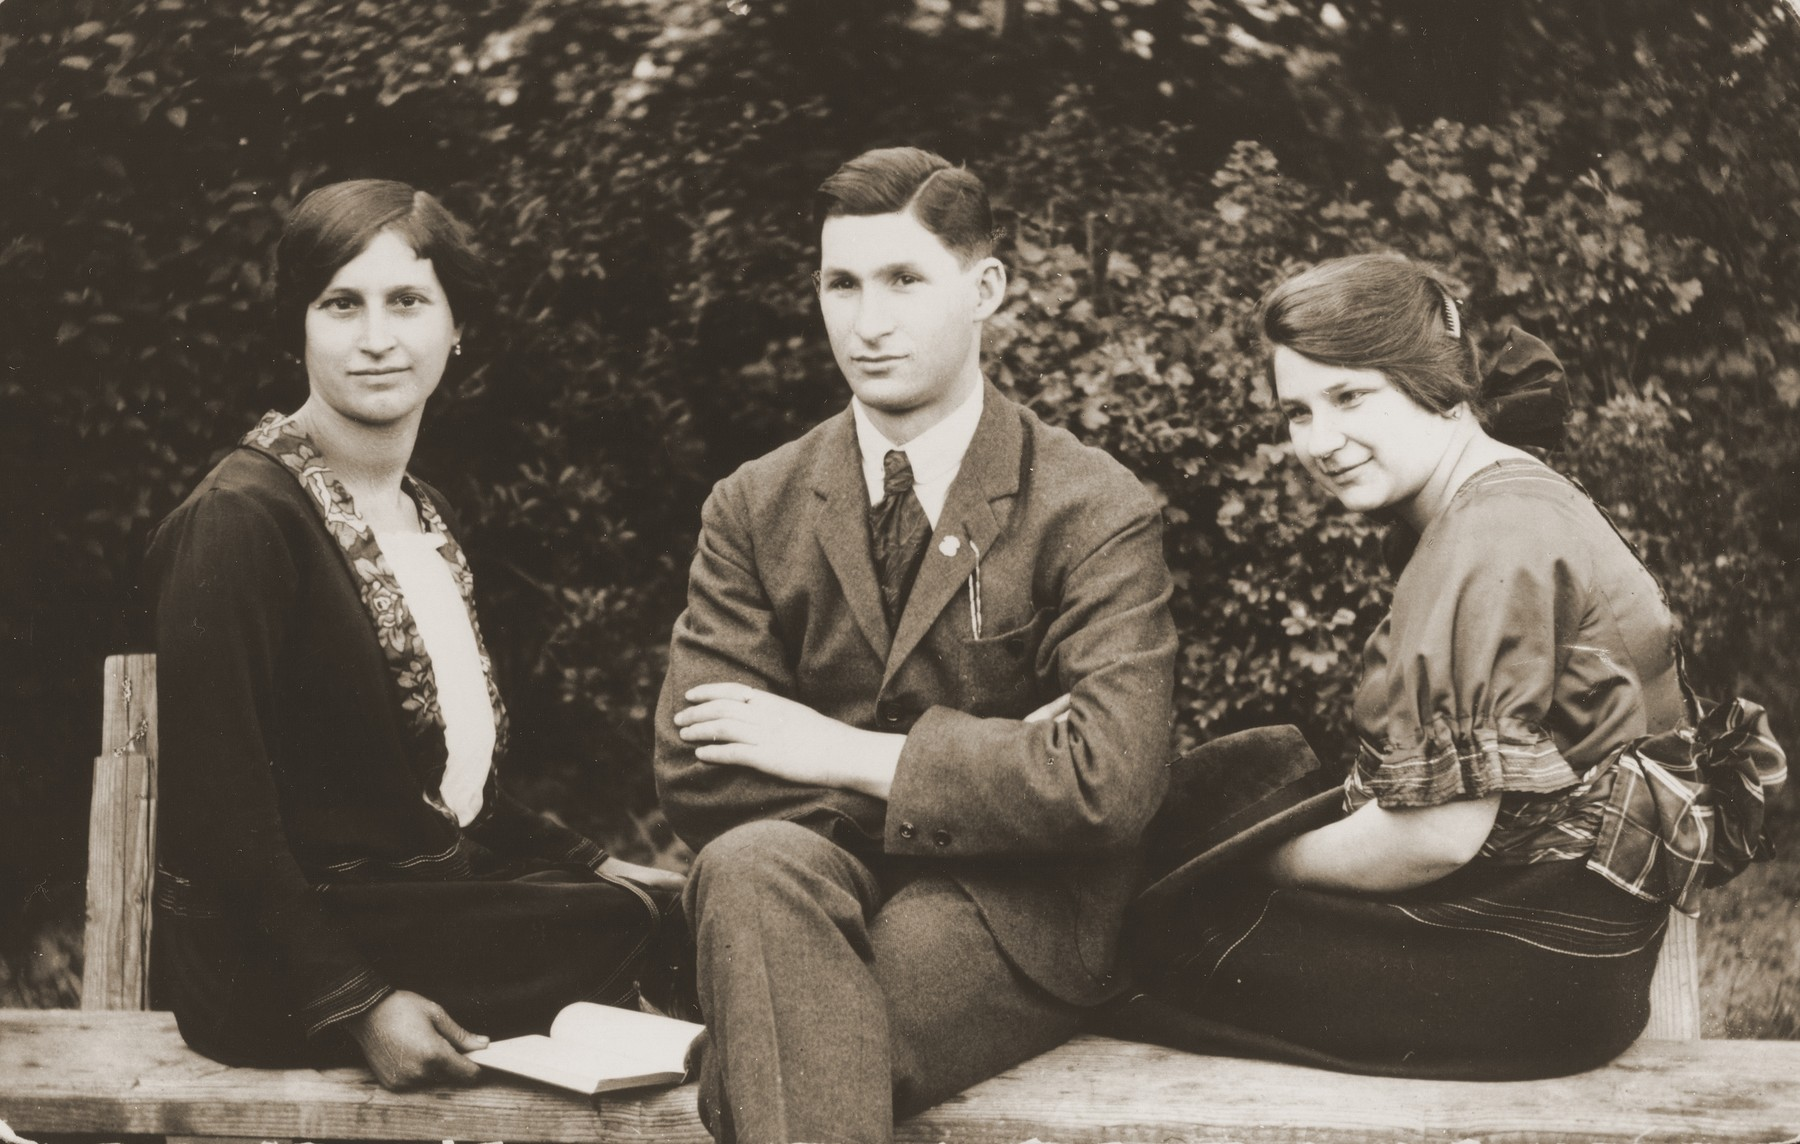 Group portrait of three Jewish siblings in Budapest.  Pictured from left to right are Piri, Andres and Boriska Kupfermann.  They are siblings of the donor's father, Beno Kupfermann.